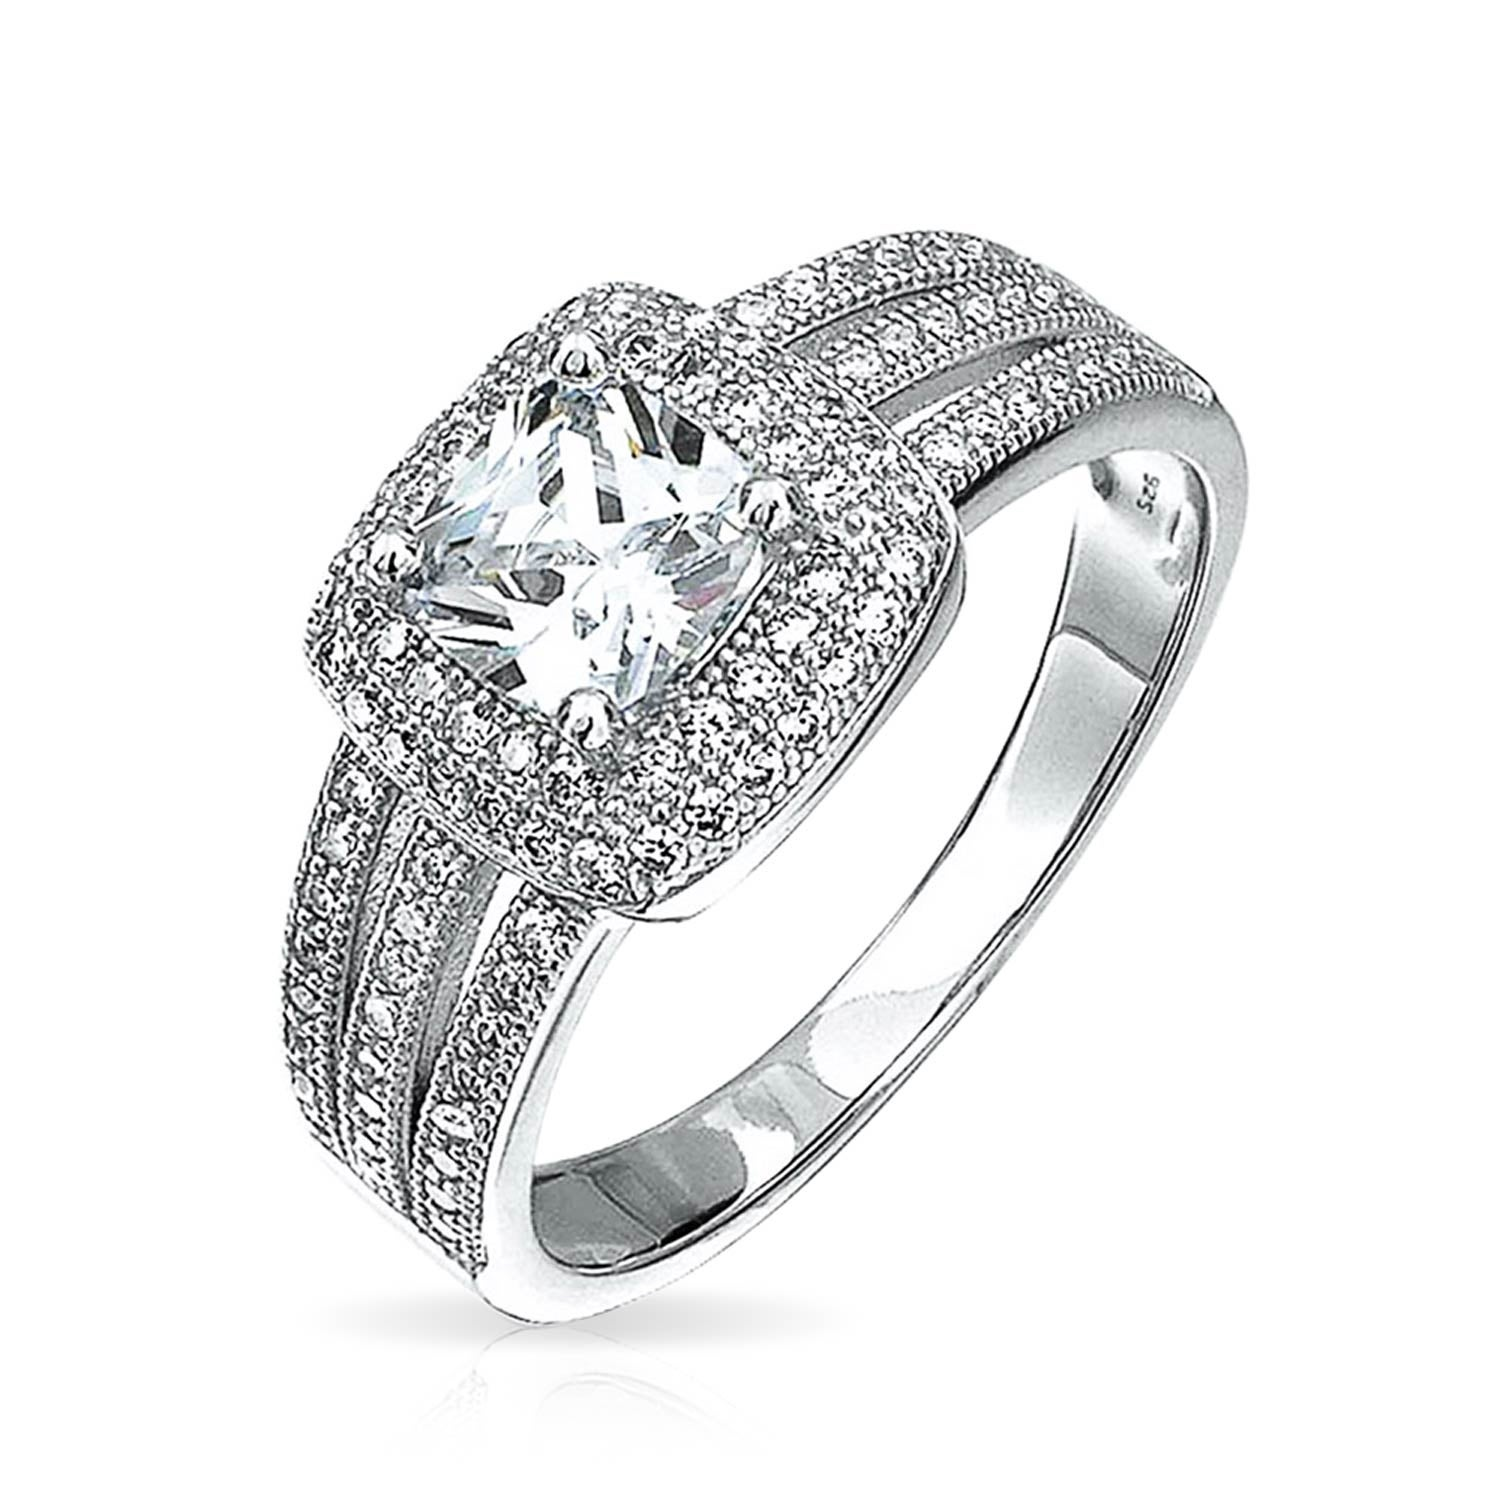 2ct Square Cushion Cut Solitaire Halo Aaa Cz Engagement Ring For Women Micropave Triple Shank Band 925 Sterling Silver